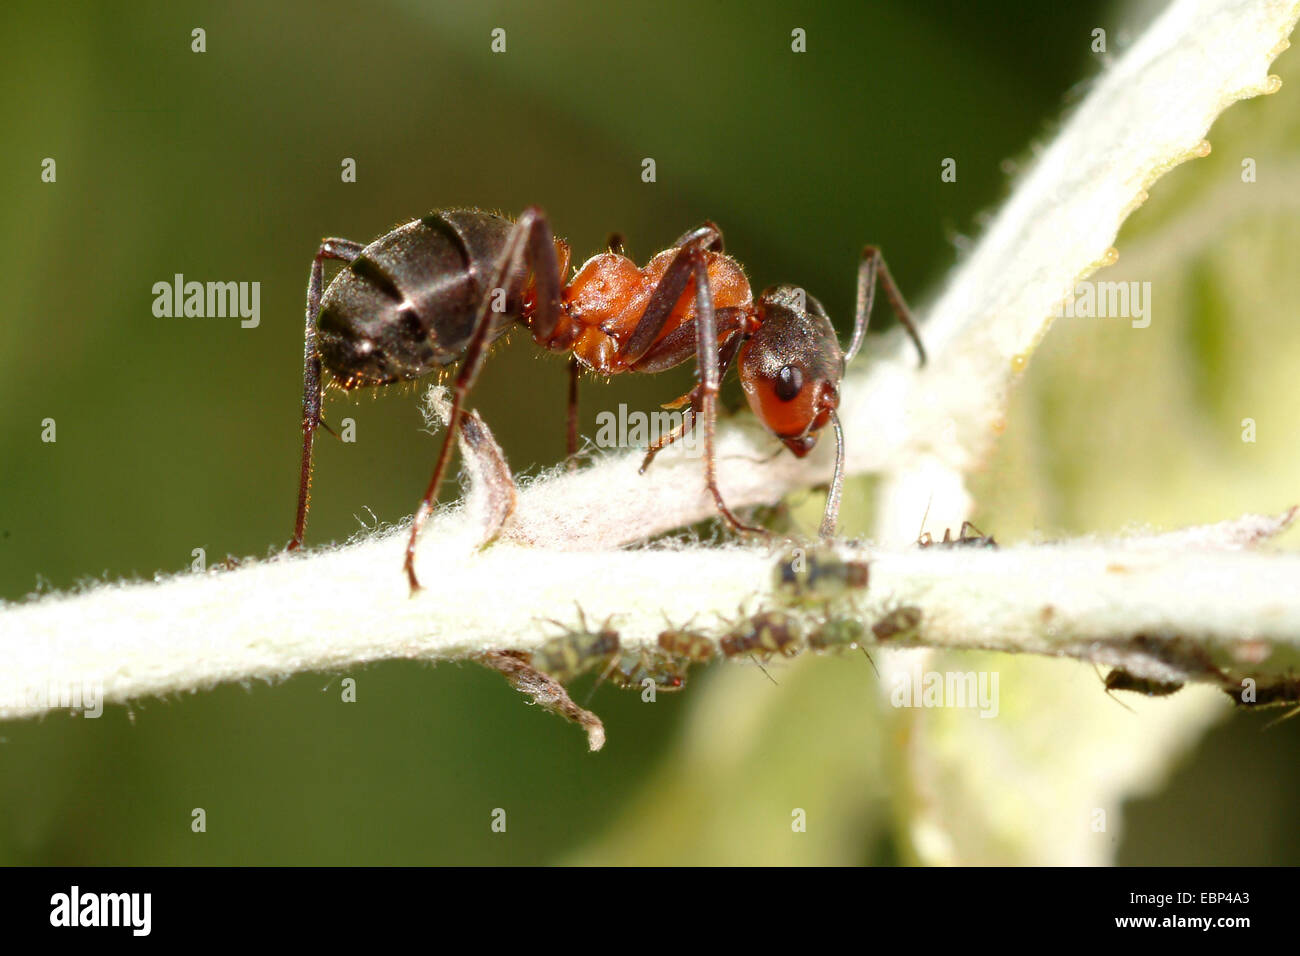 Southern wood ant, Horse ant (Formica rufa), on the hunt for greenflies, Germany - Stock Image